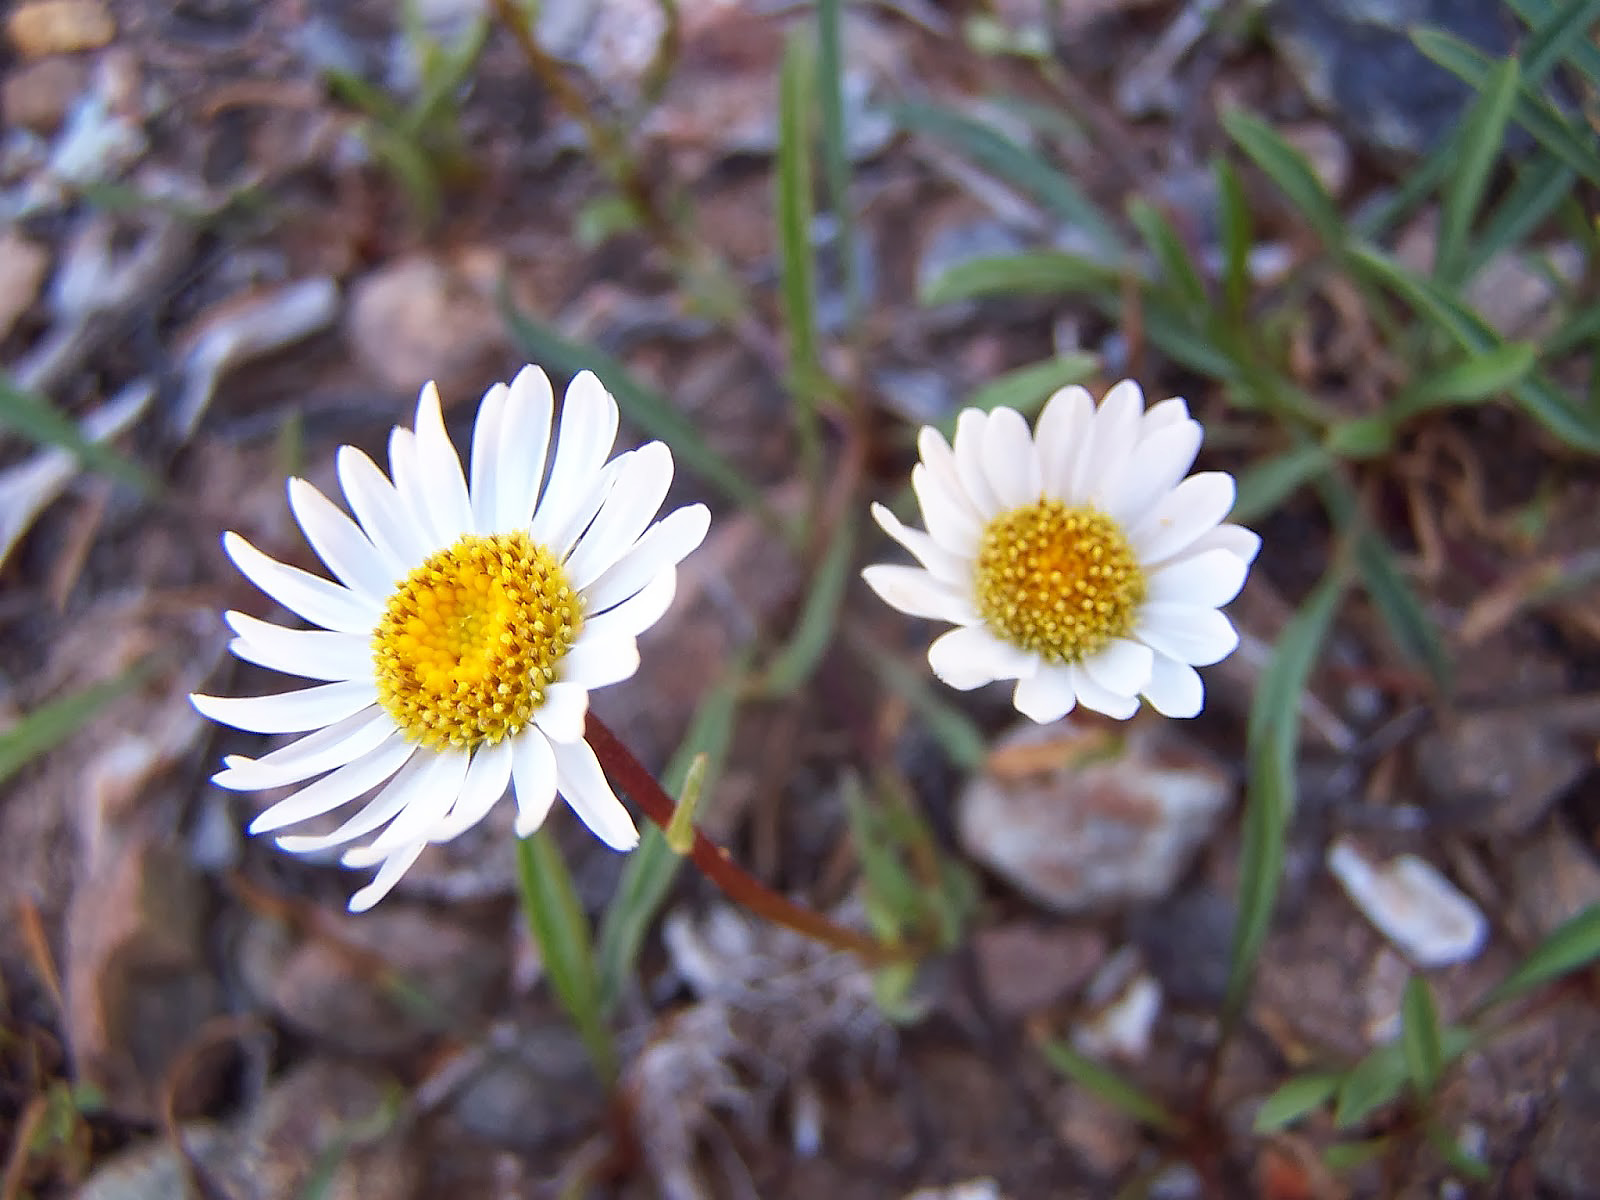 <i>Erigeron stanselliae</i> inflorescences